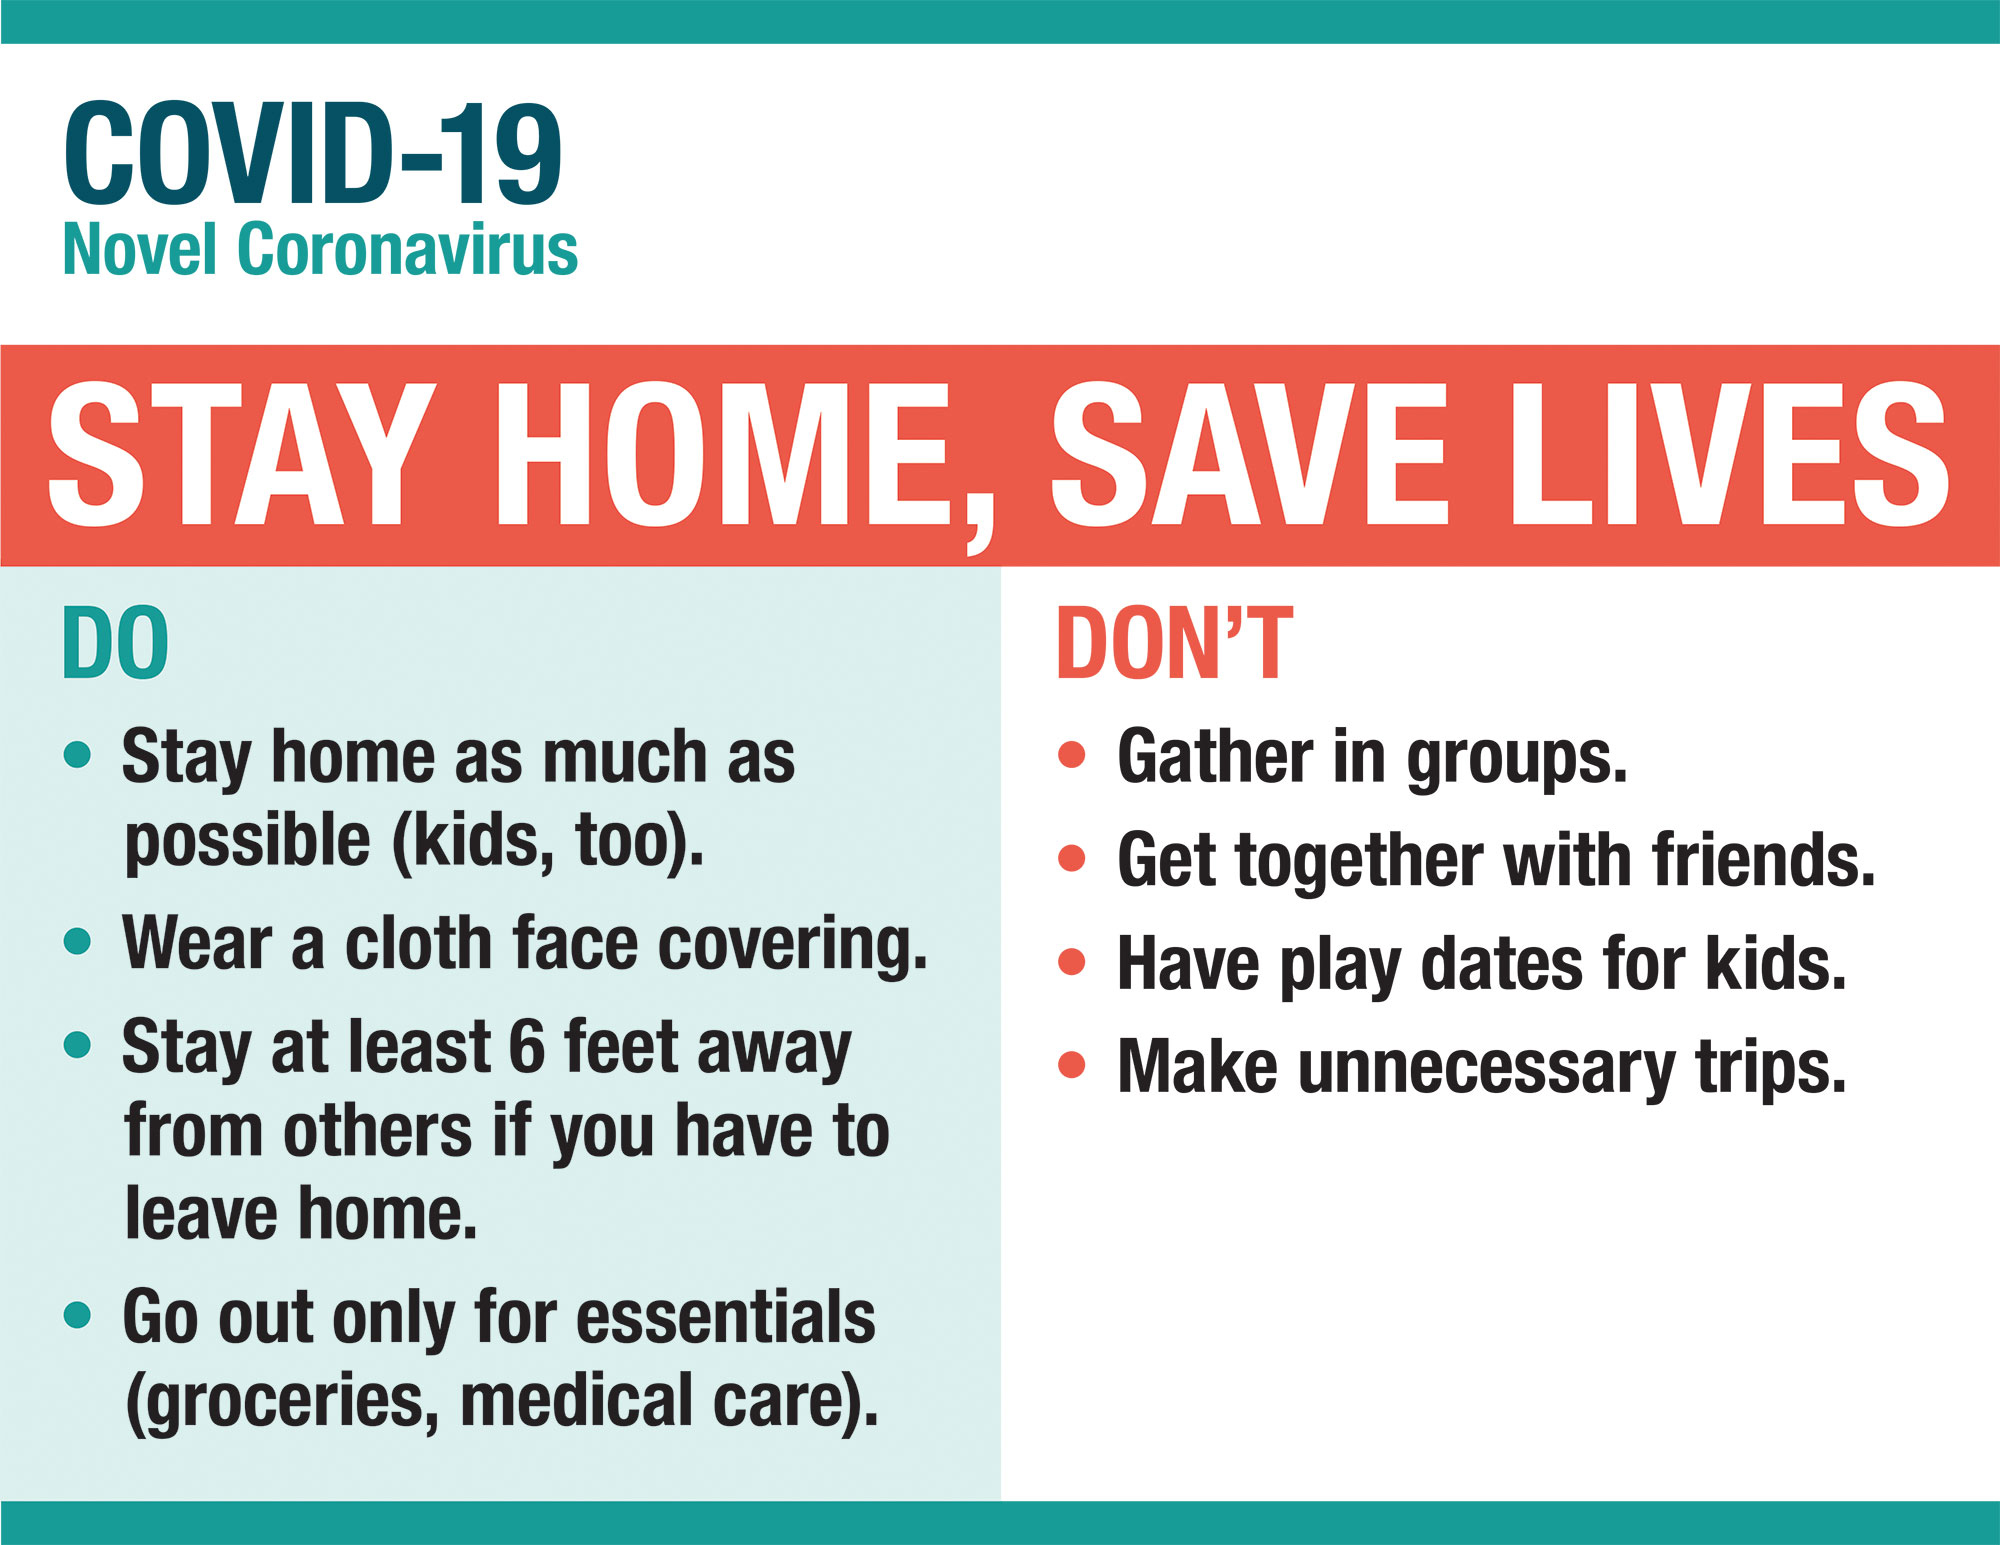 COVID-19 Stay Home, Save Lives poster